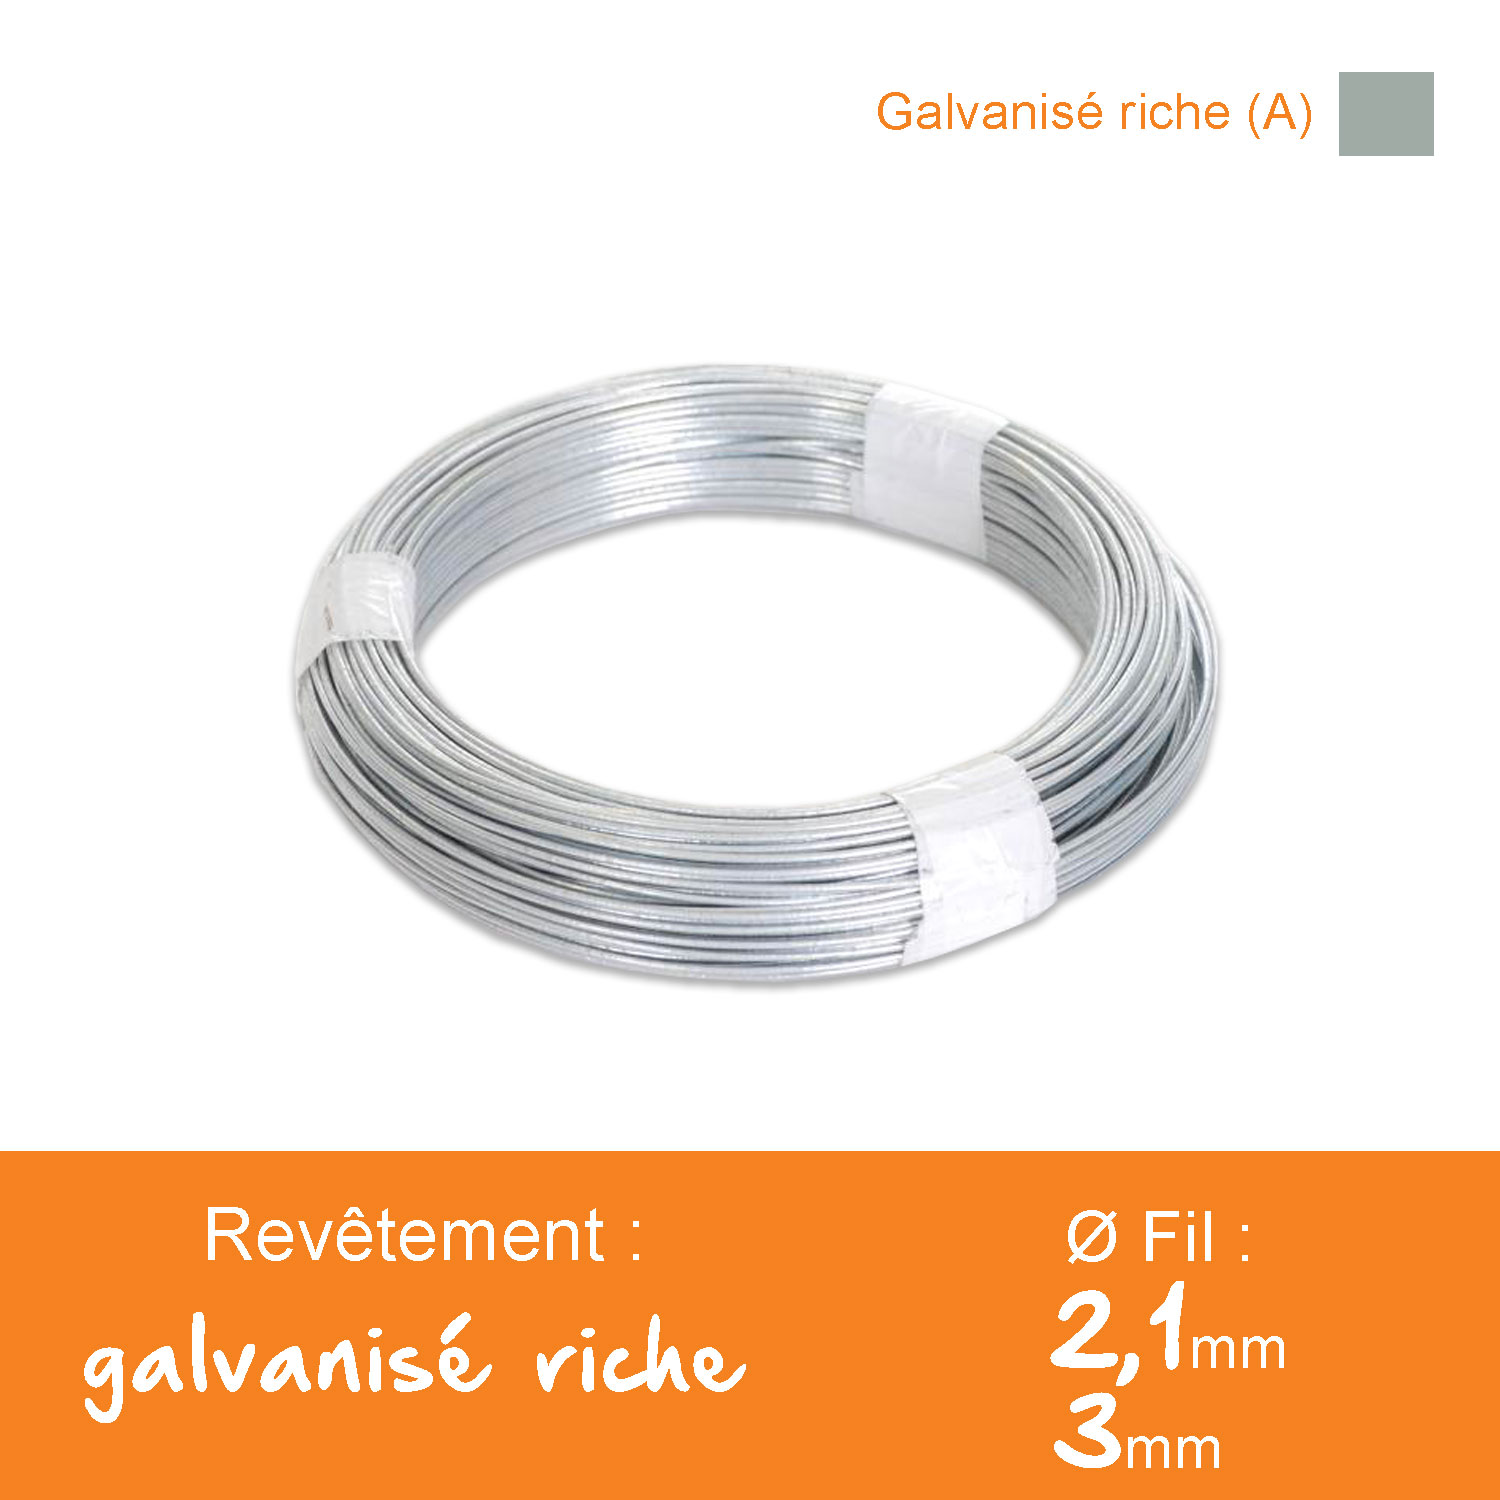 Fil de tension galvanisé riche (A) - Ø 2,1 / 3 mm - Lg. 100 m